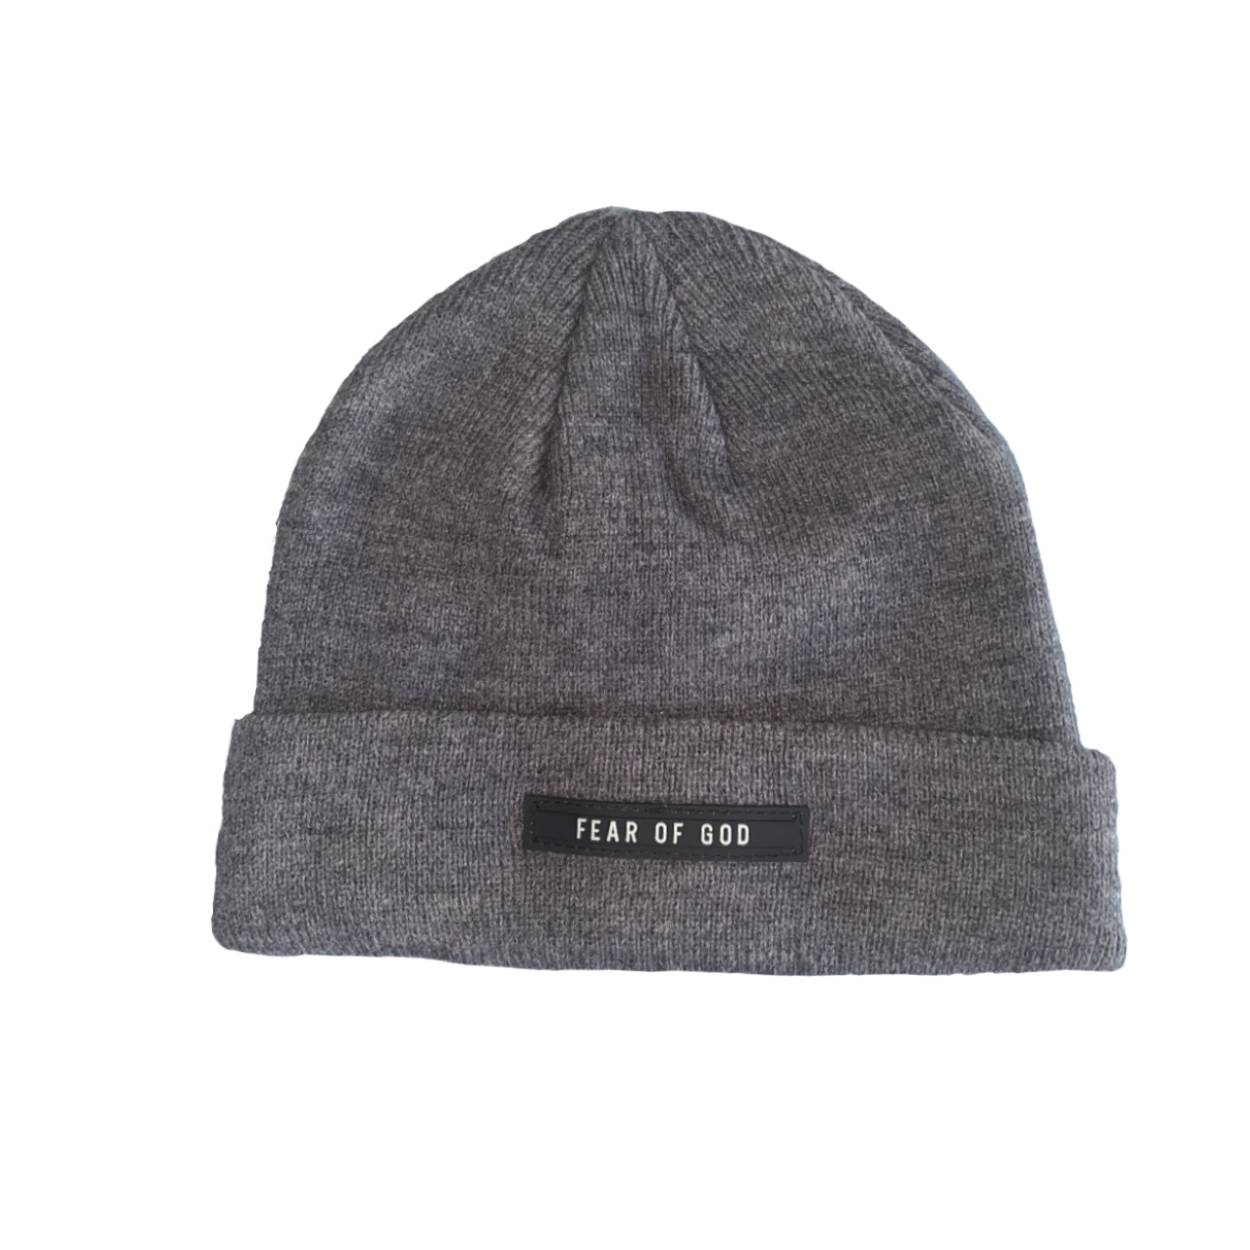 FEAR OF GOD Cuff Beanie Dark Grey - After Burn